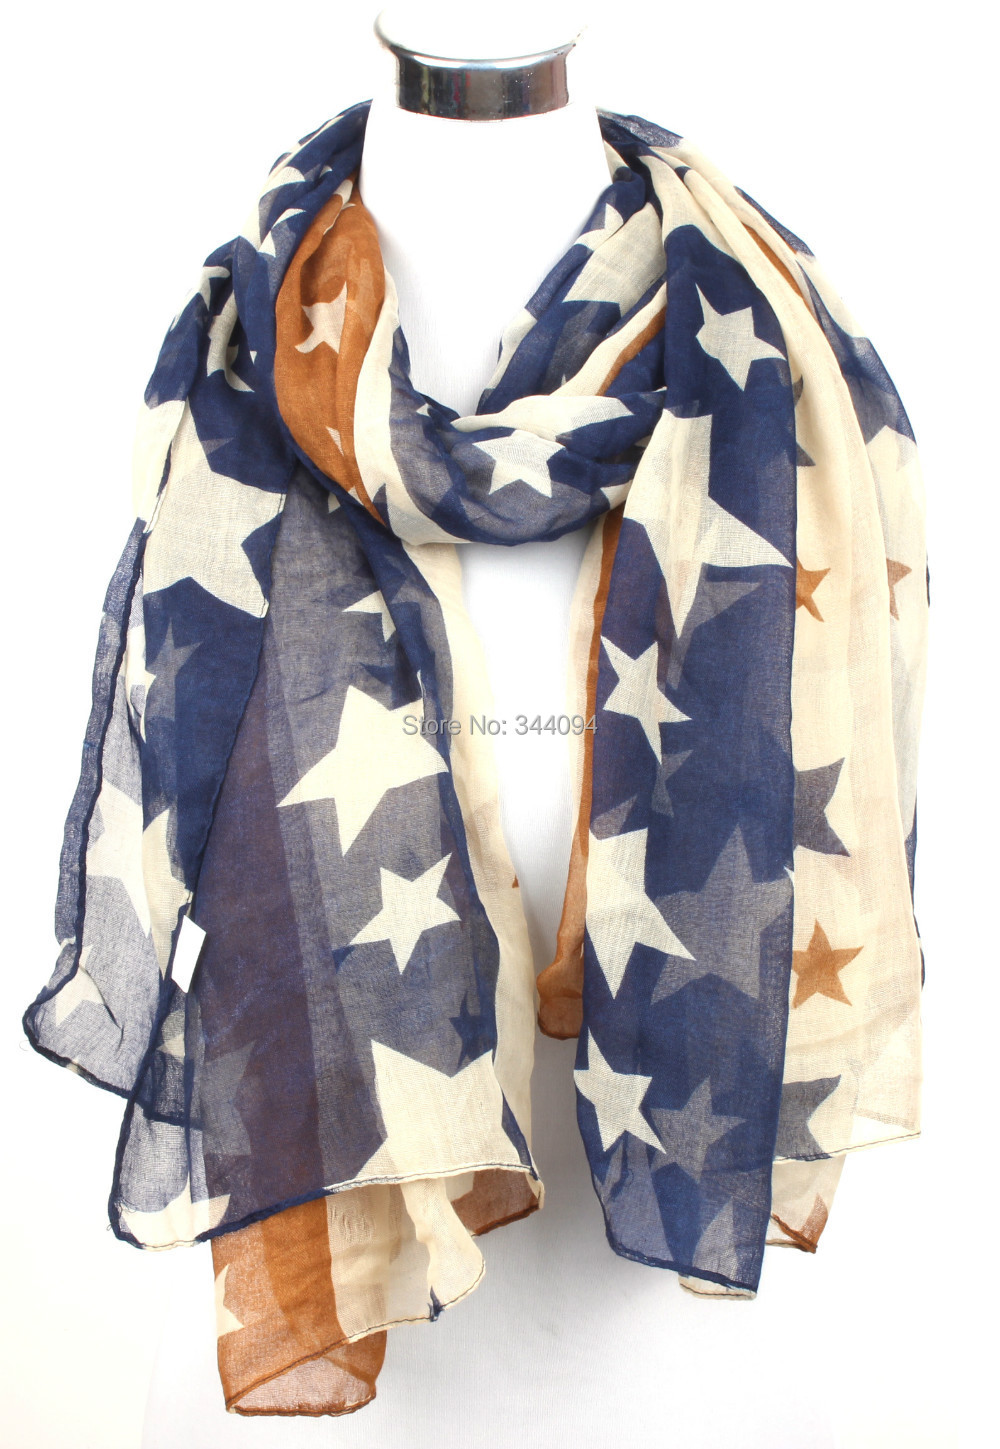 Free shipping red star infinity scarf & oblong scarf five-pointed star scarf shawl wrap female muffler Women gift(China (Mainland))